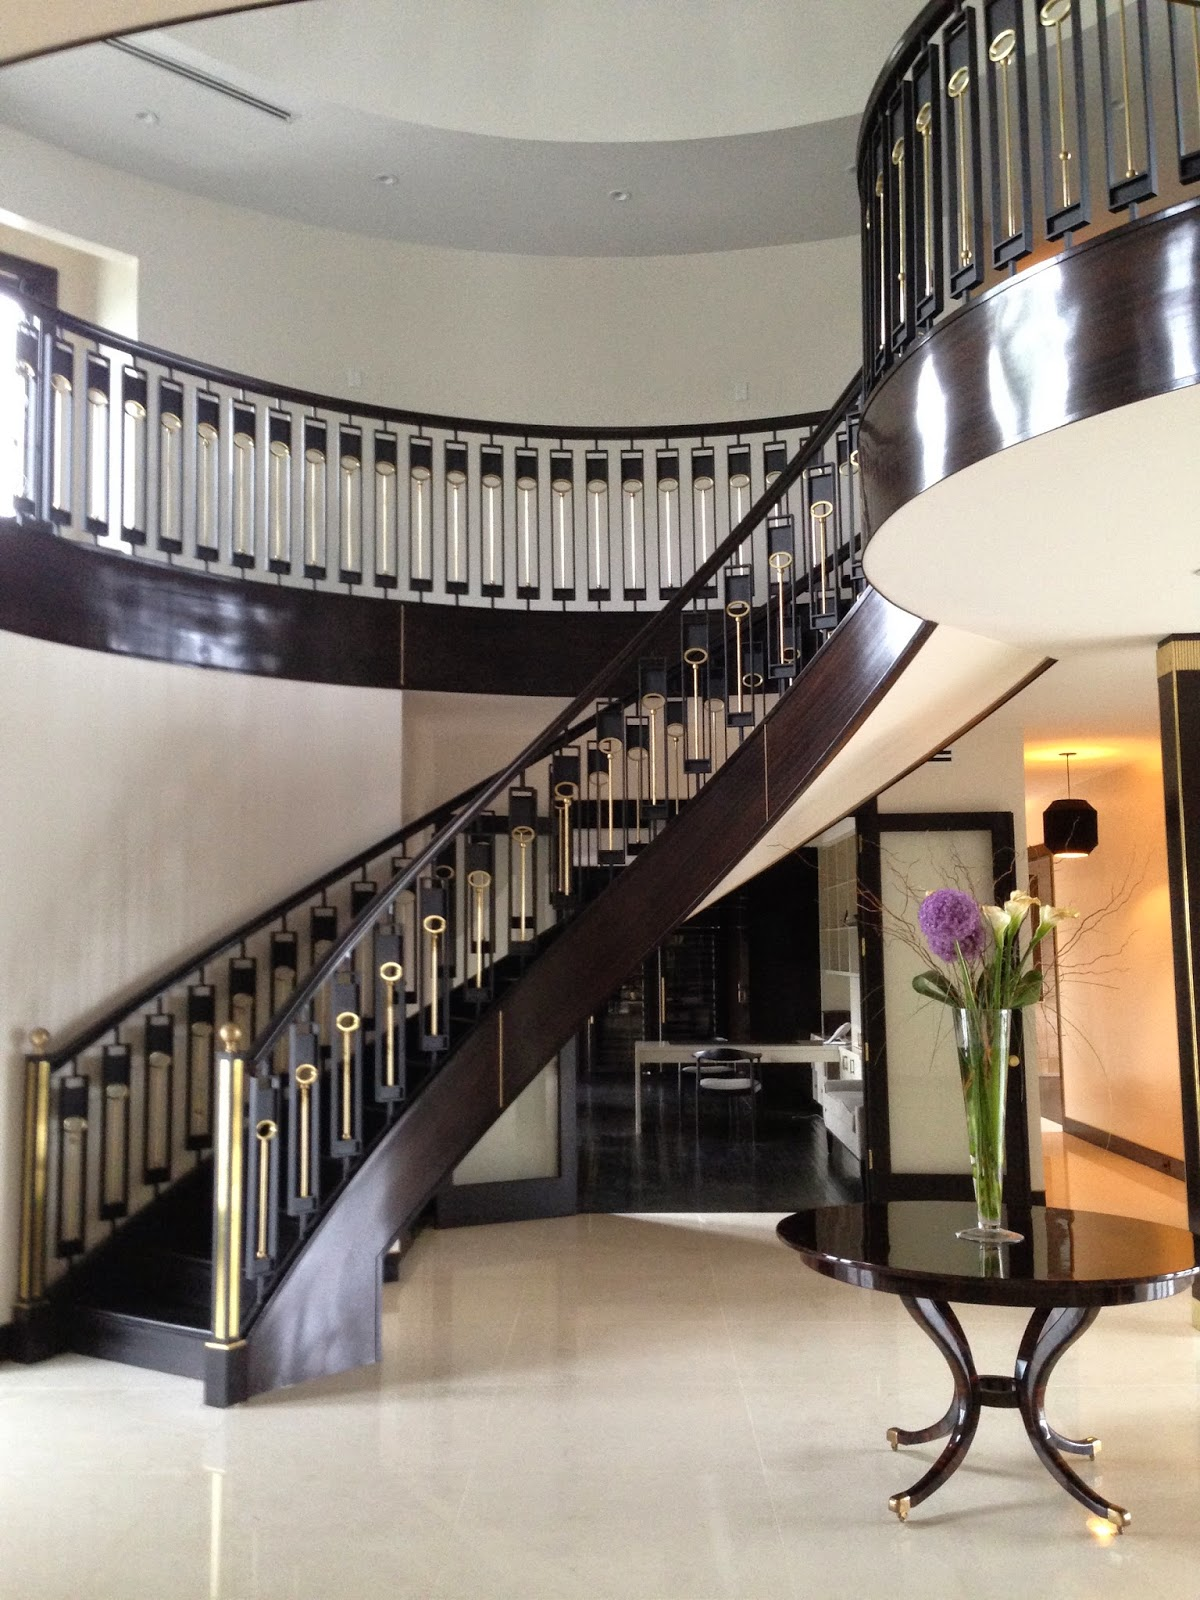 Hmh iron design hmh iron design interior railings for Interior iron railing designs